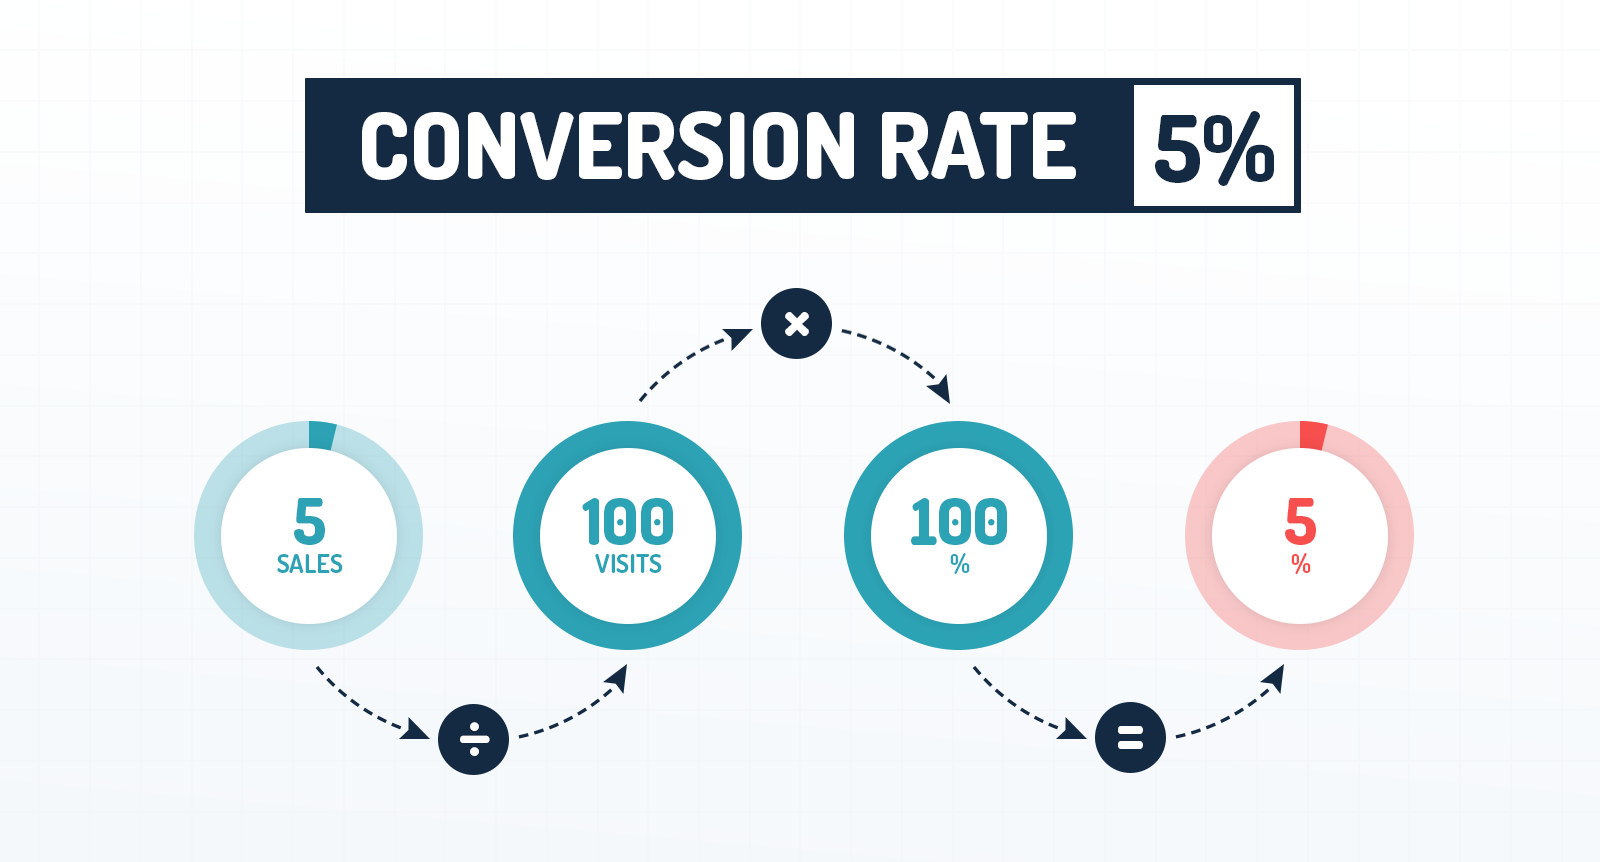 This is now conversion rate is counted